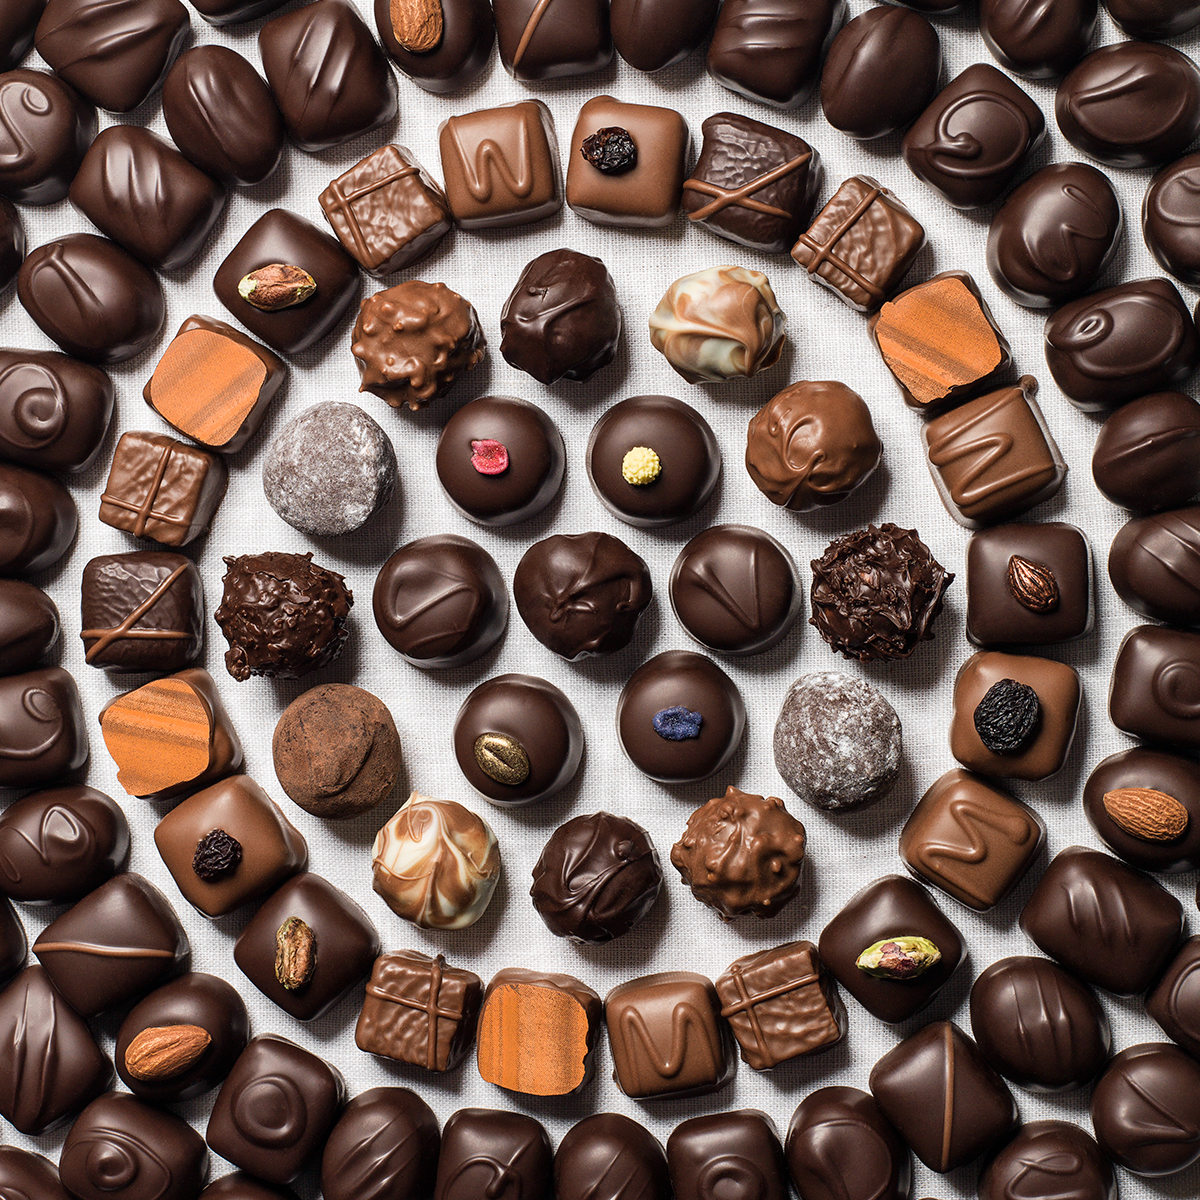 HAIGH'S CHOCOLATES - PRODUCING THE BEST TASTING CHOCOLATE | She ...